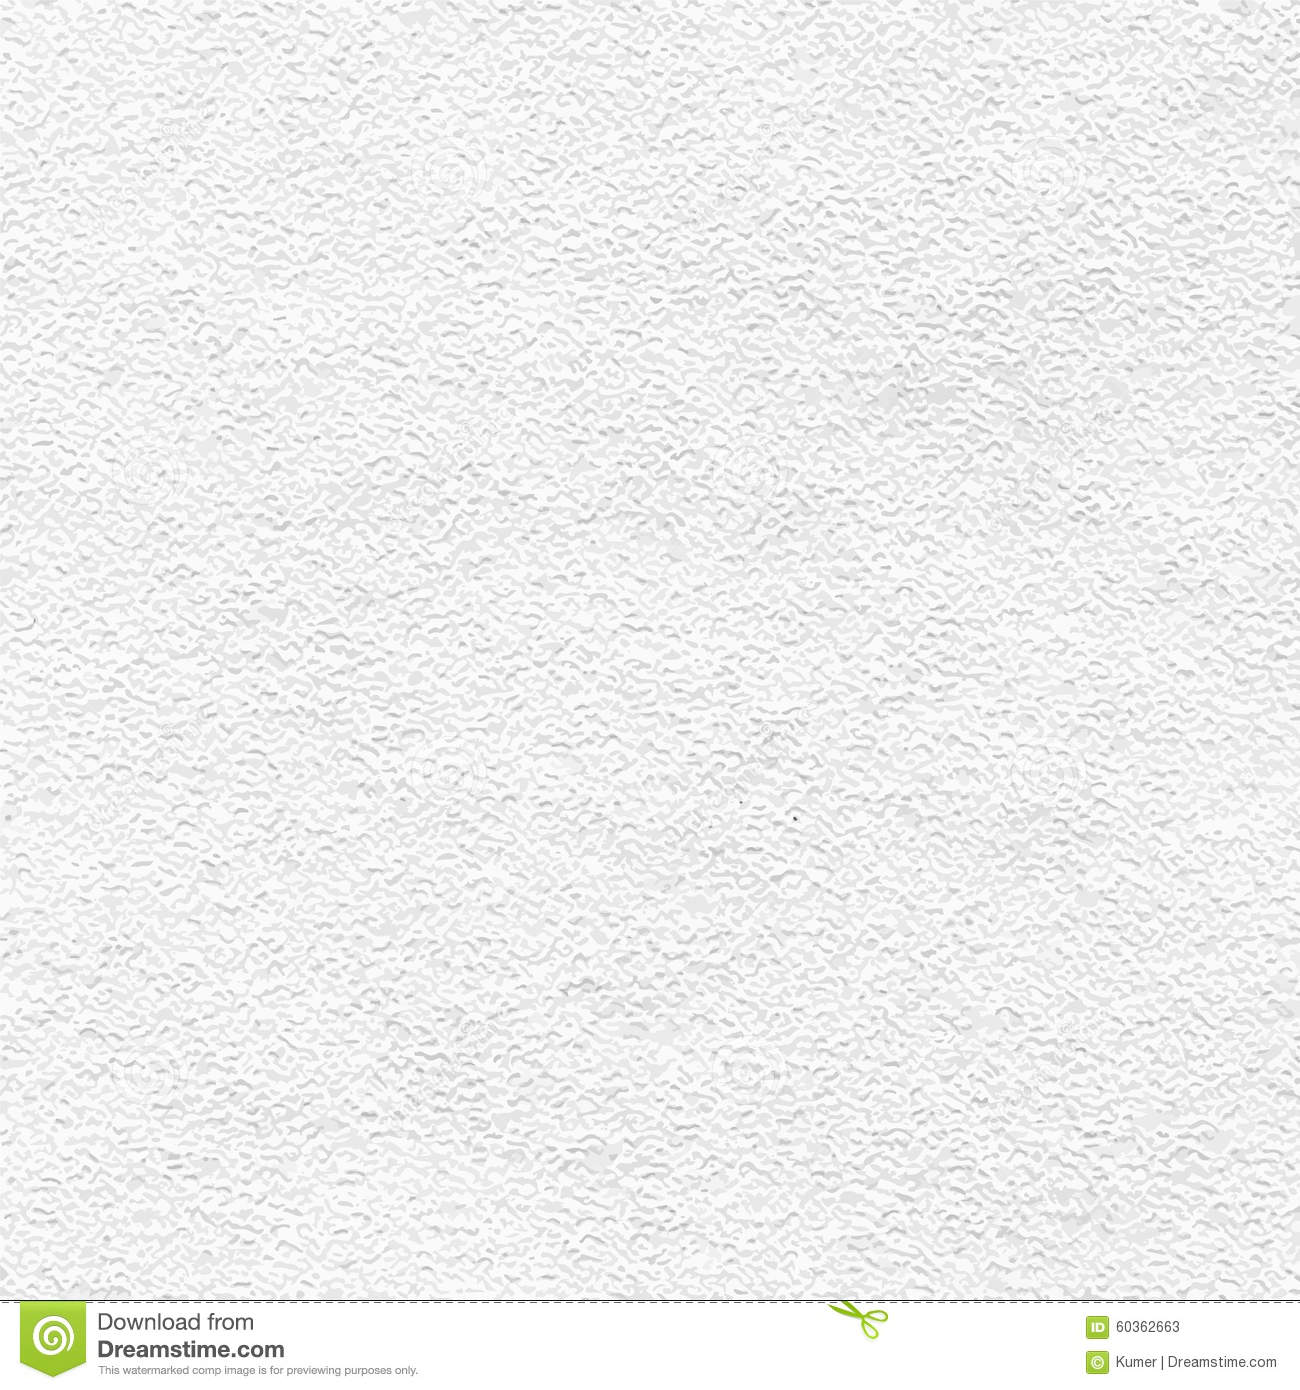 Vector White Watercolor Paper Texture Stock Vector - Image: 60362663